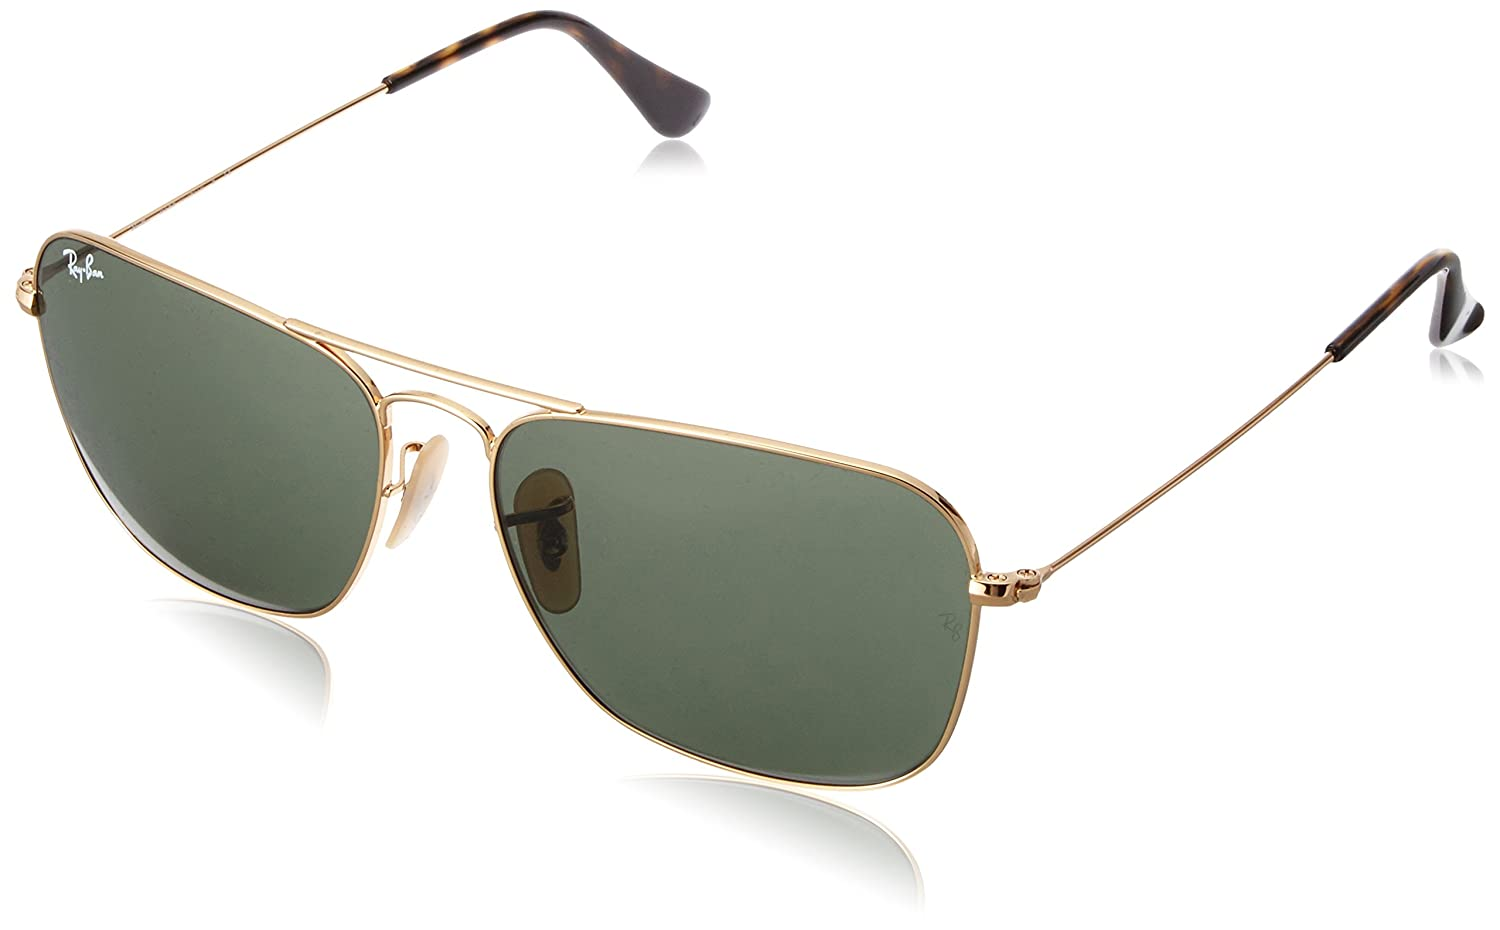 240ec17c7d Amazon.com  Ray-Ban CARAVAN - GOLD Frame DARK GREEN Lenses 58mm  Non-Polarized  Ray-Ban  Clothing